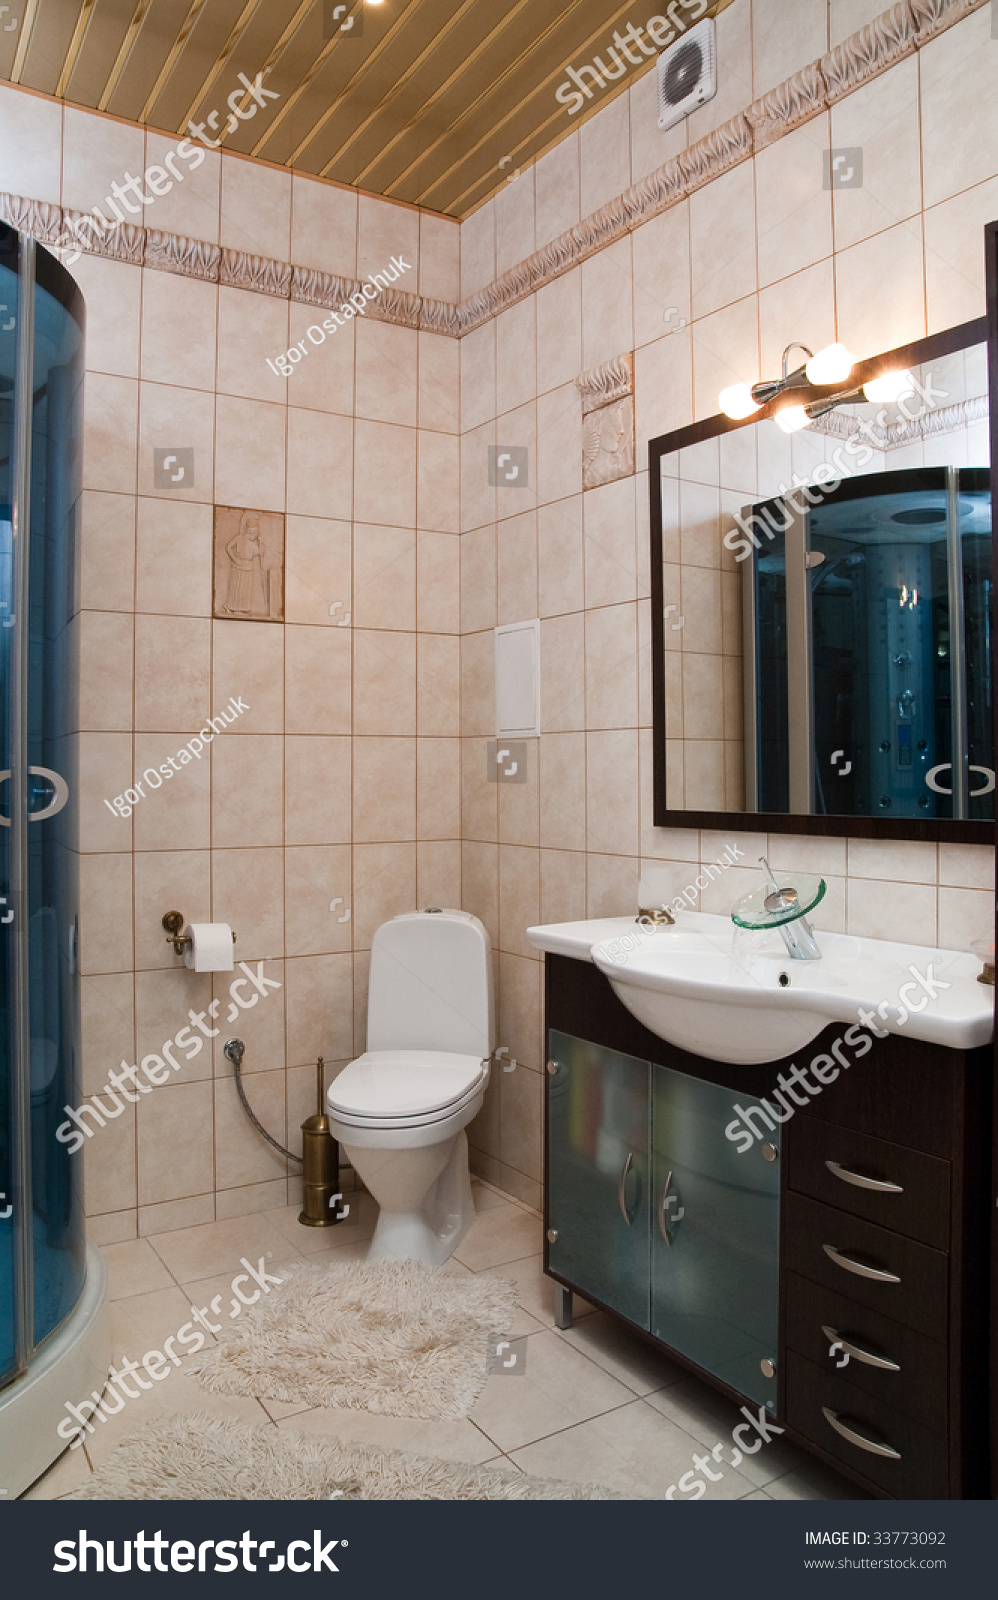 Mirror on a wall images home wall decoration ideas mirror on a wall choice image home wall decoration ideas mirrors on a wall gallery home amipublicfo Gallery